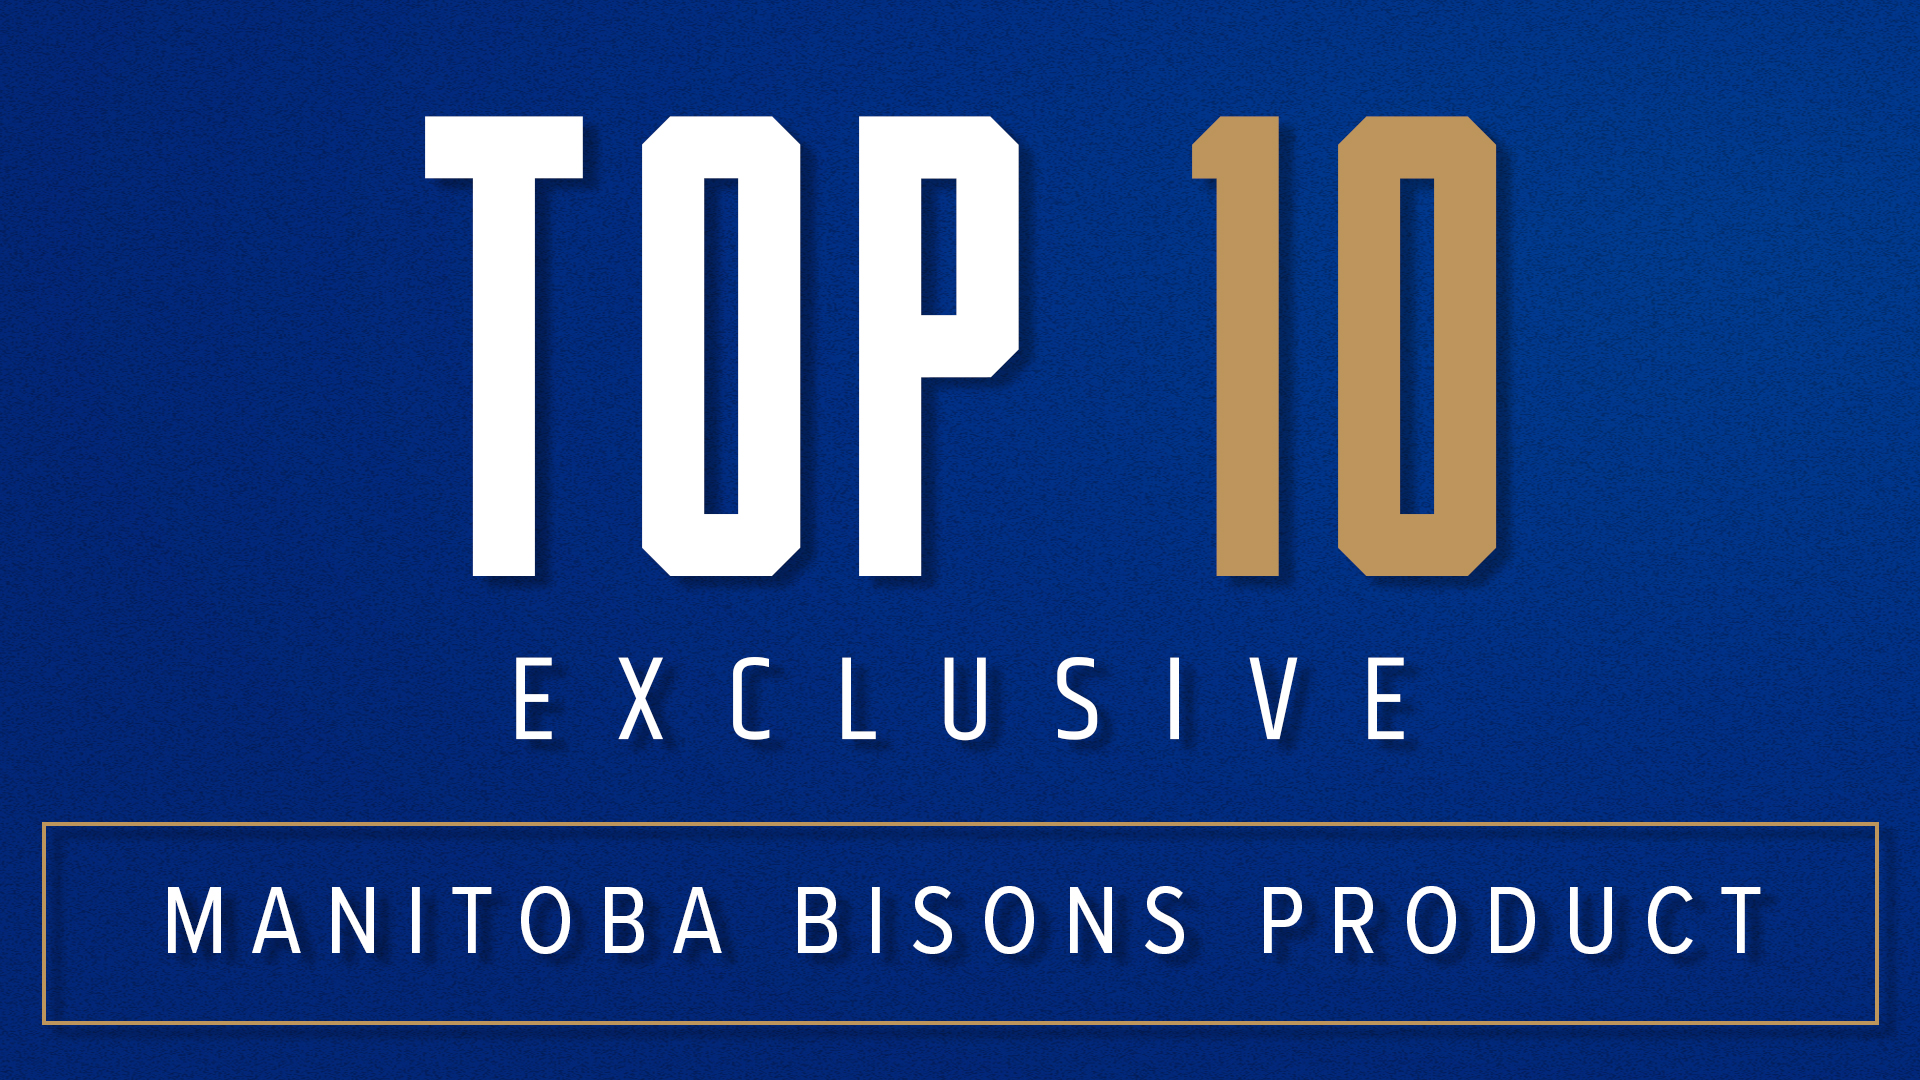 Top 10 Manitoba Bisons Product